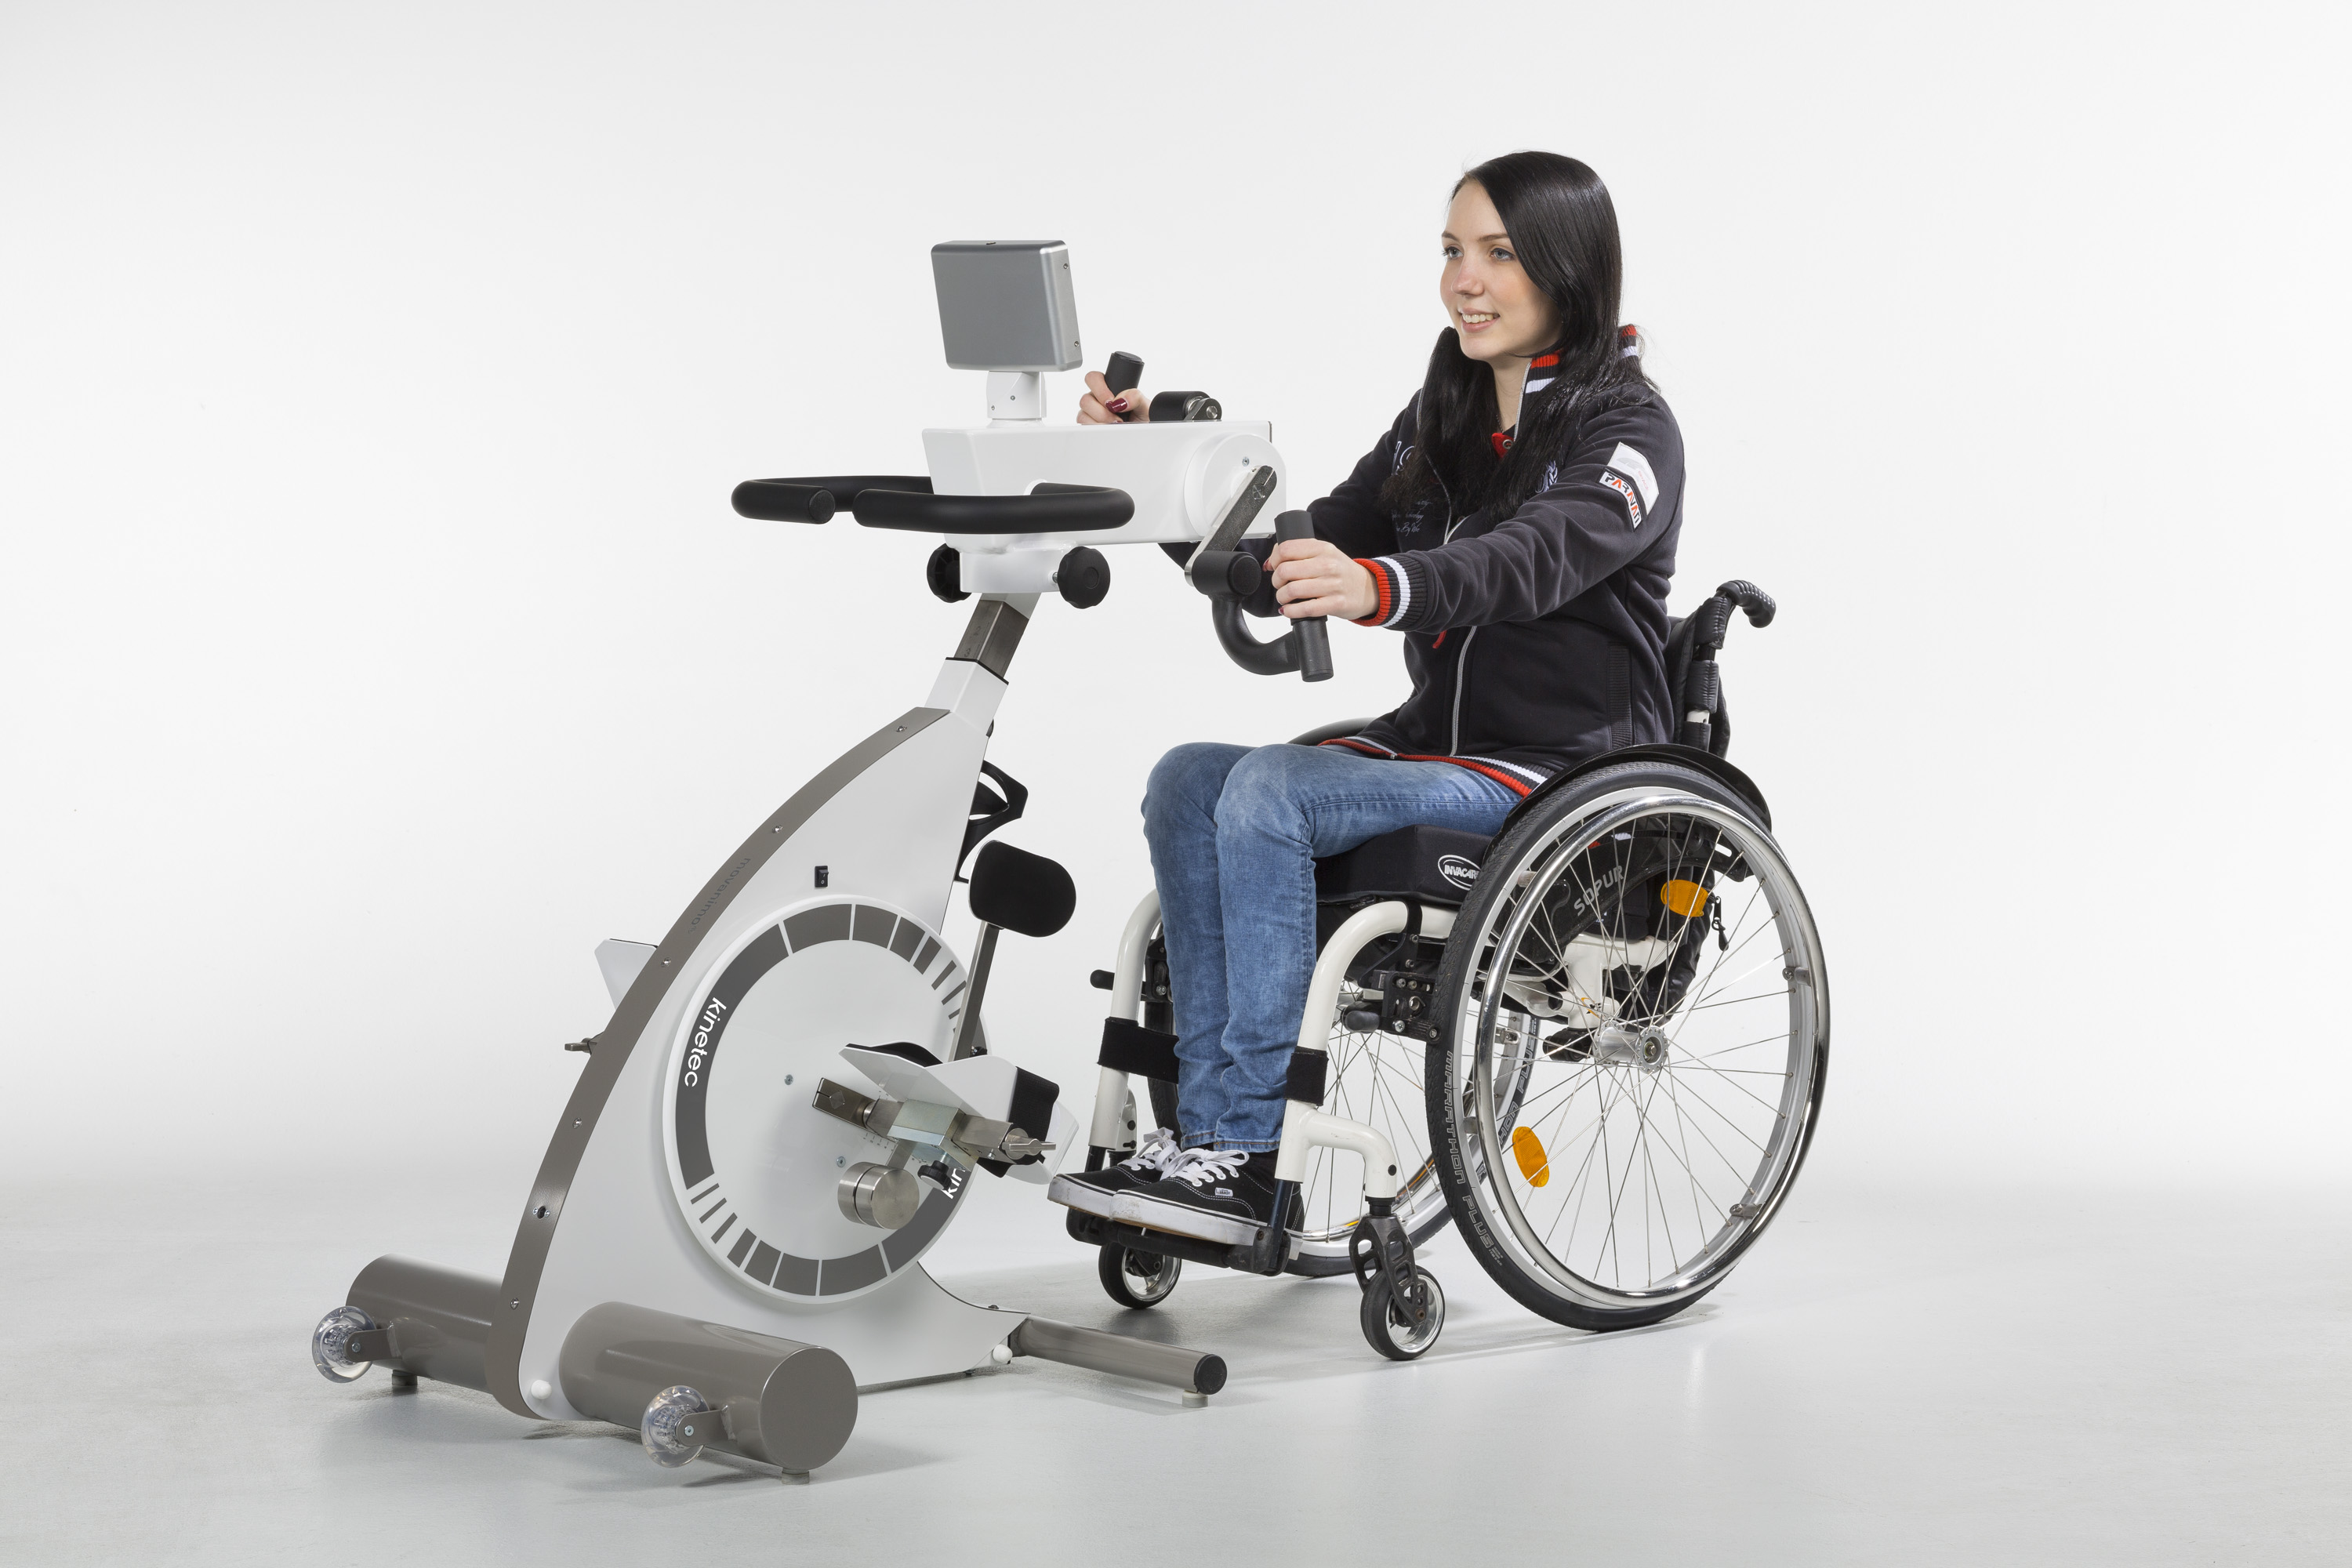 Kinetec Kinevia Duo in use by female in wheelchair